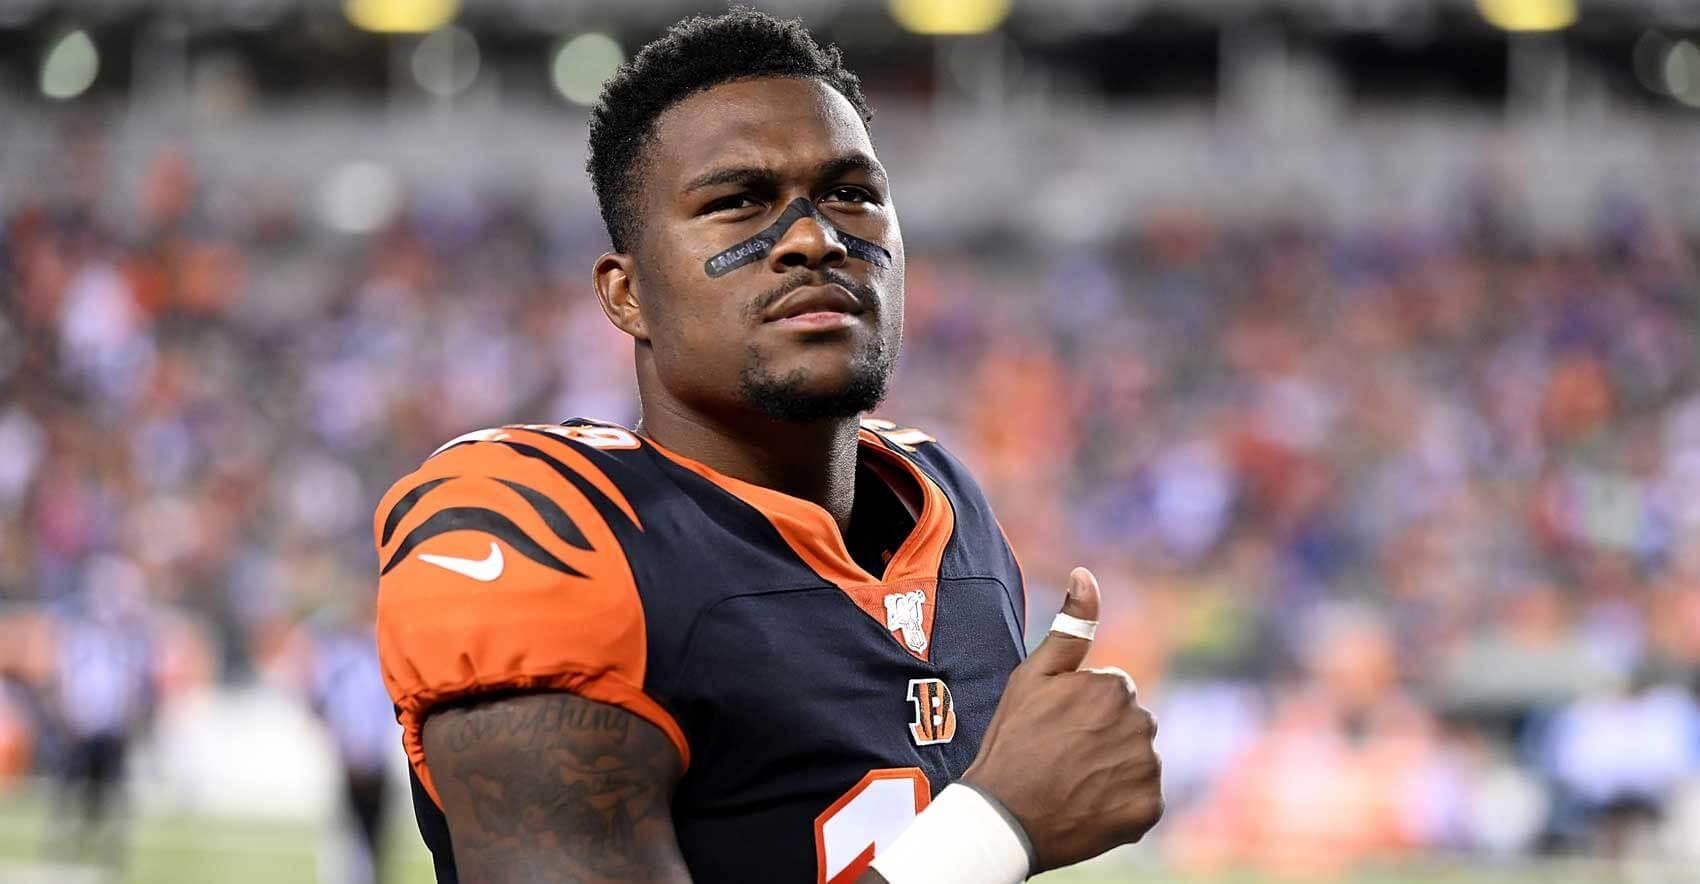 Week 6 Waiver Wire (Fantasy Football)